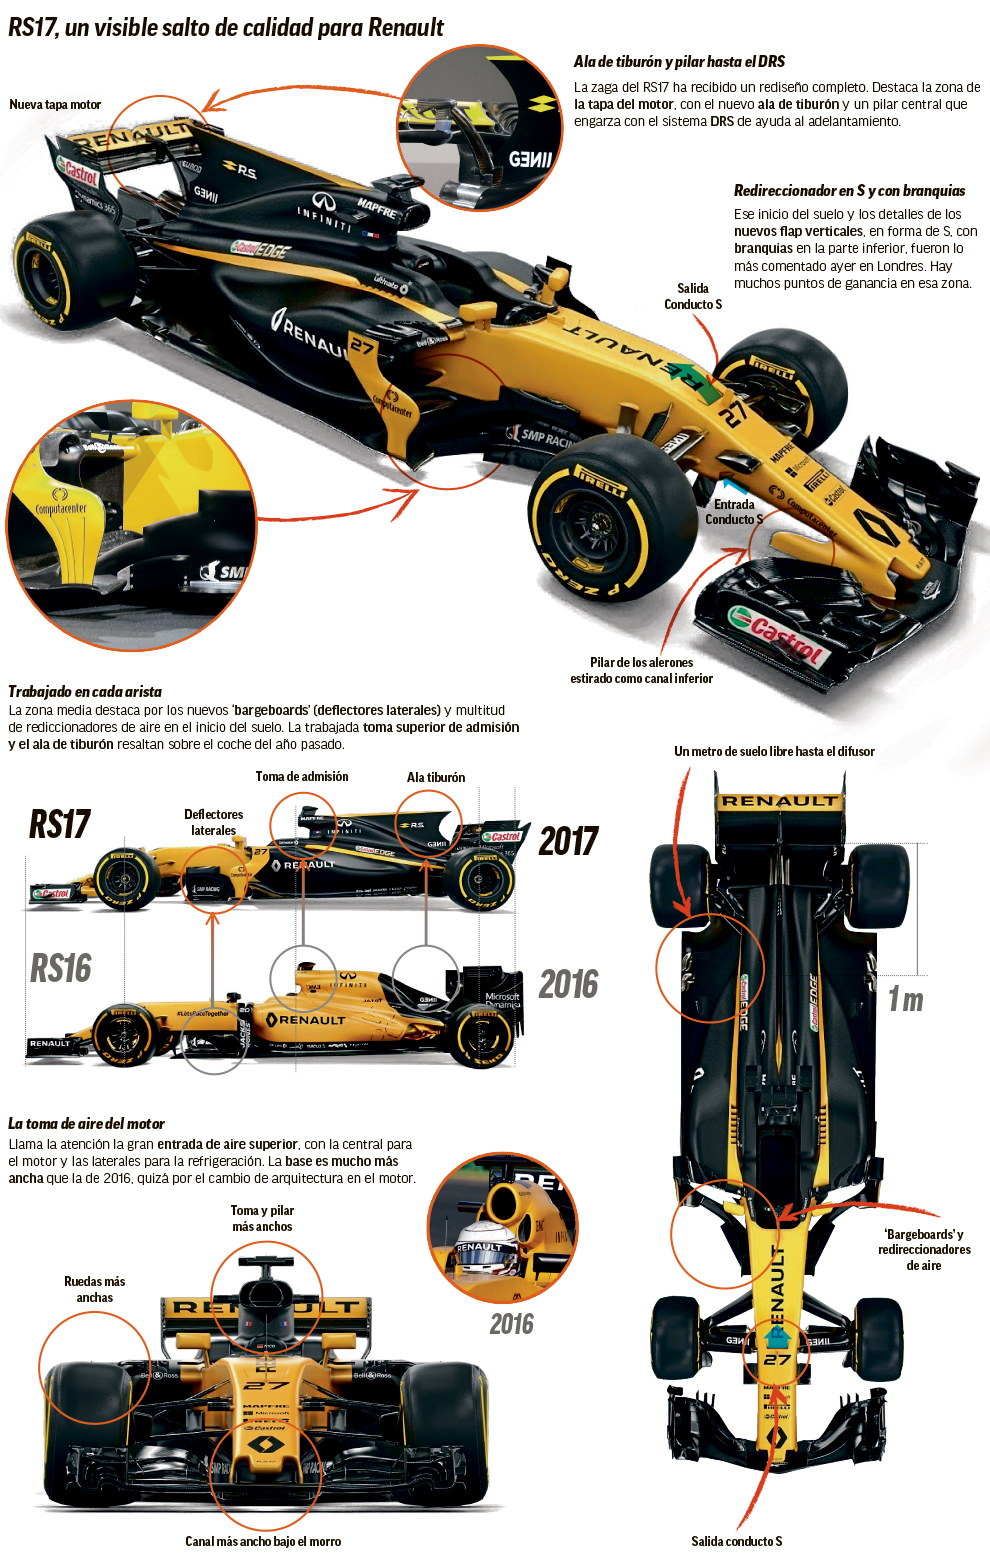 Re: Renault F1 Team UP y tecnica en general